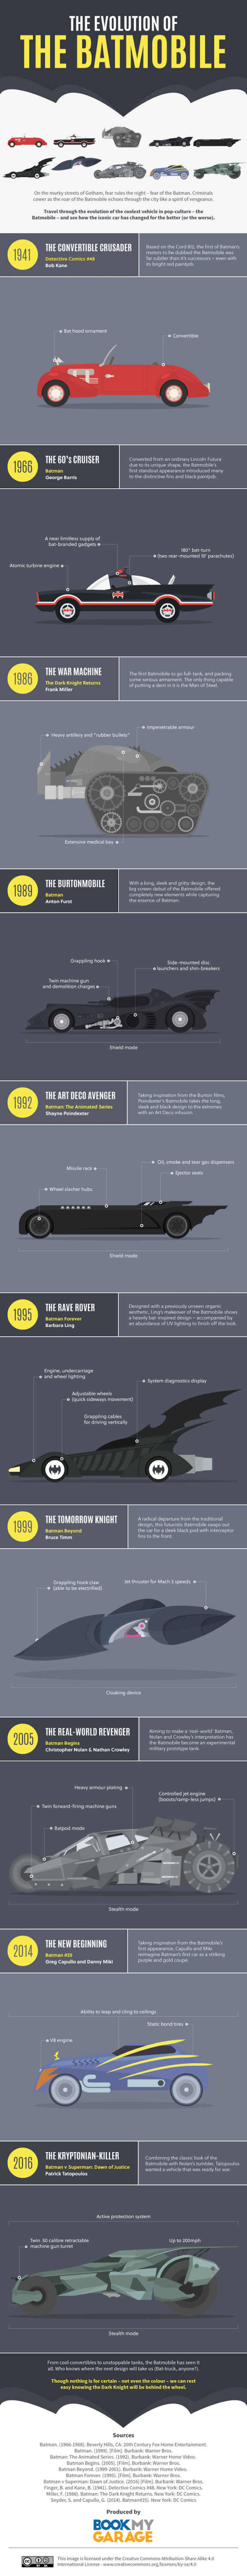 The evolution of the Batmobile - infographic